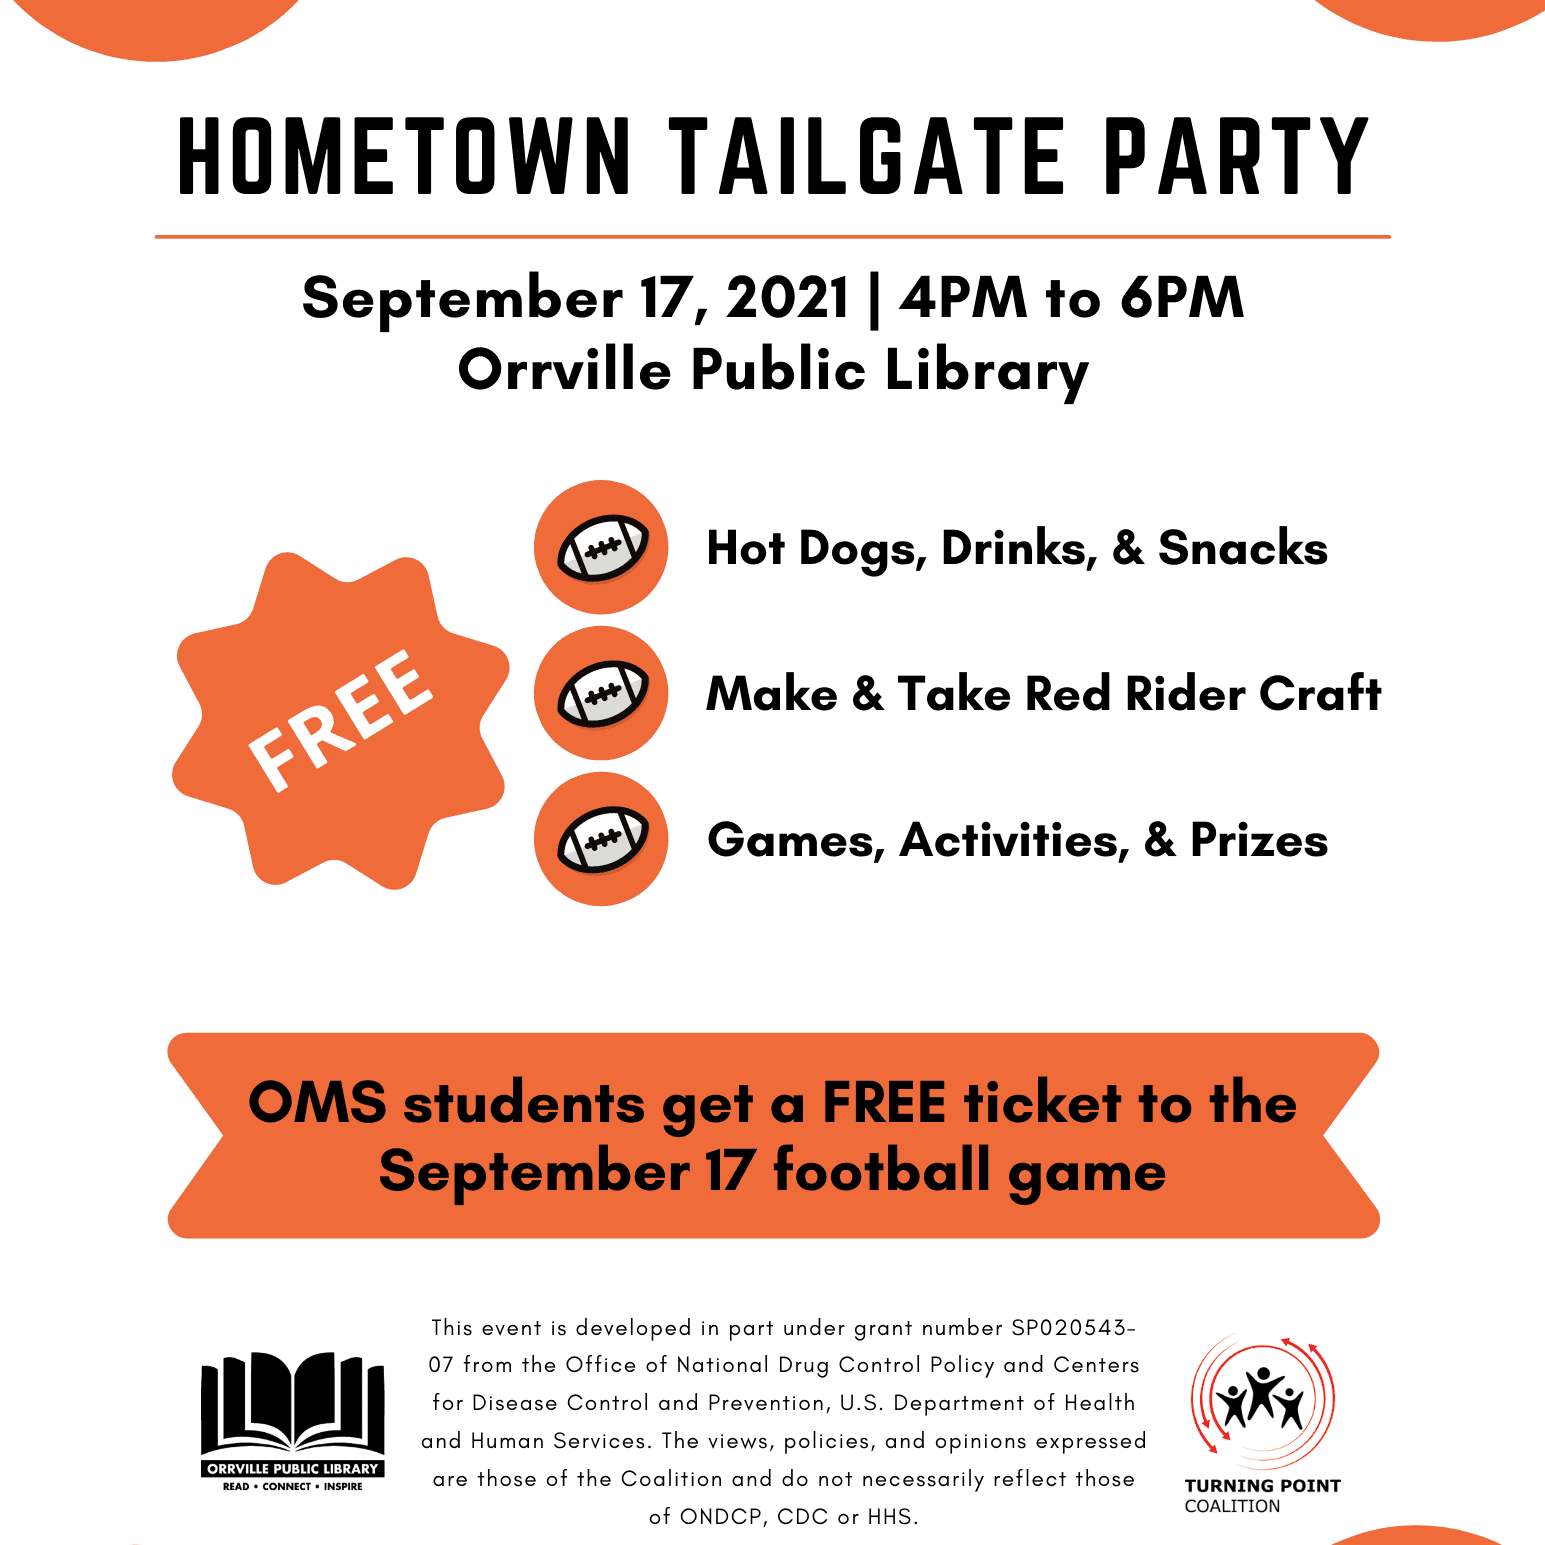 Hometown Tailgate Party Flyer 2021